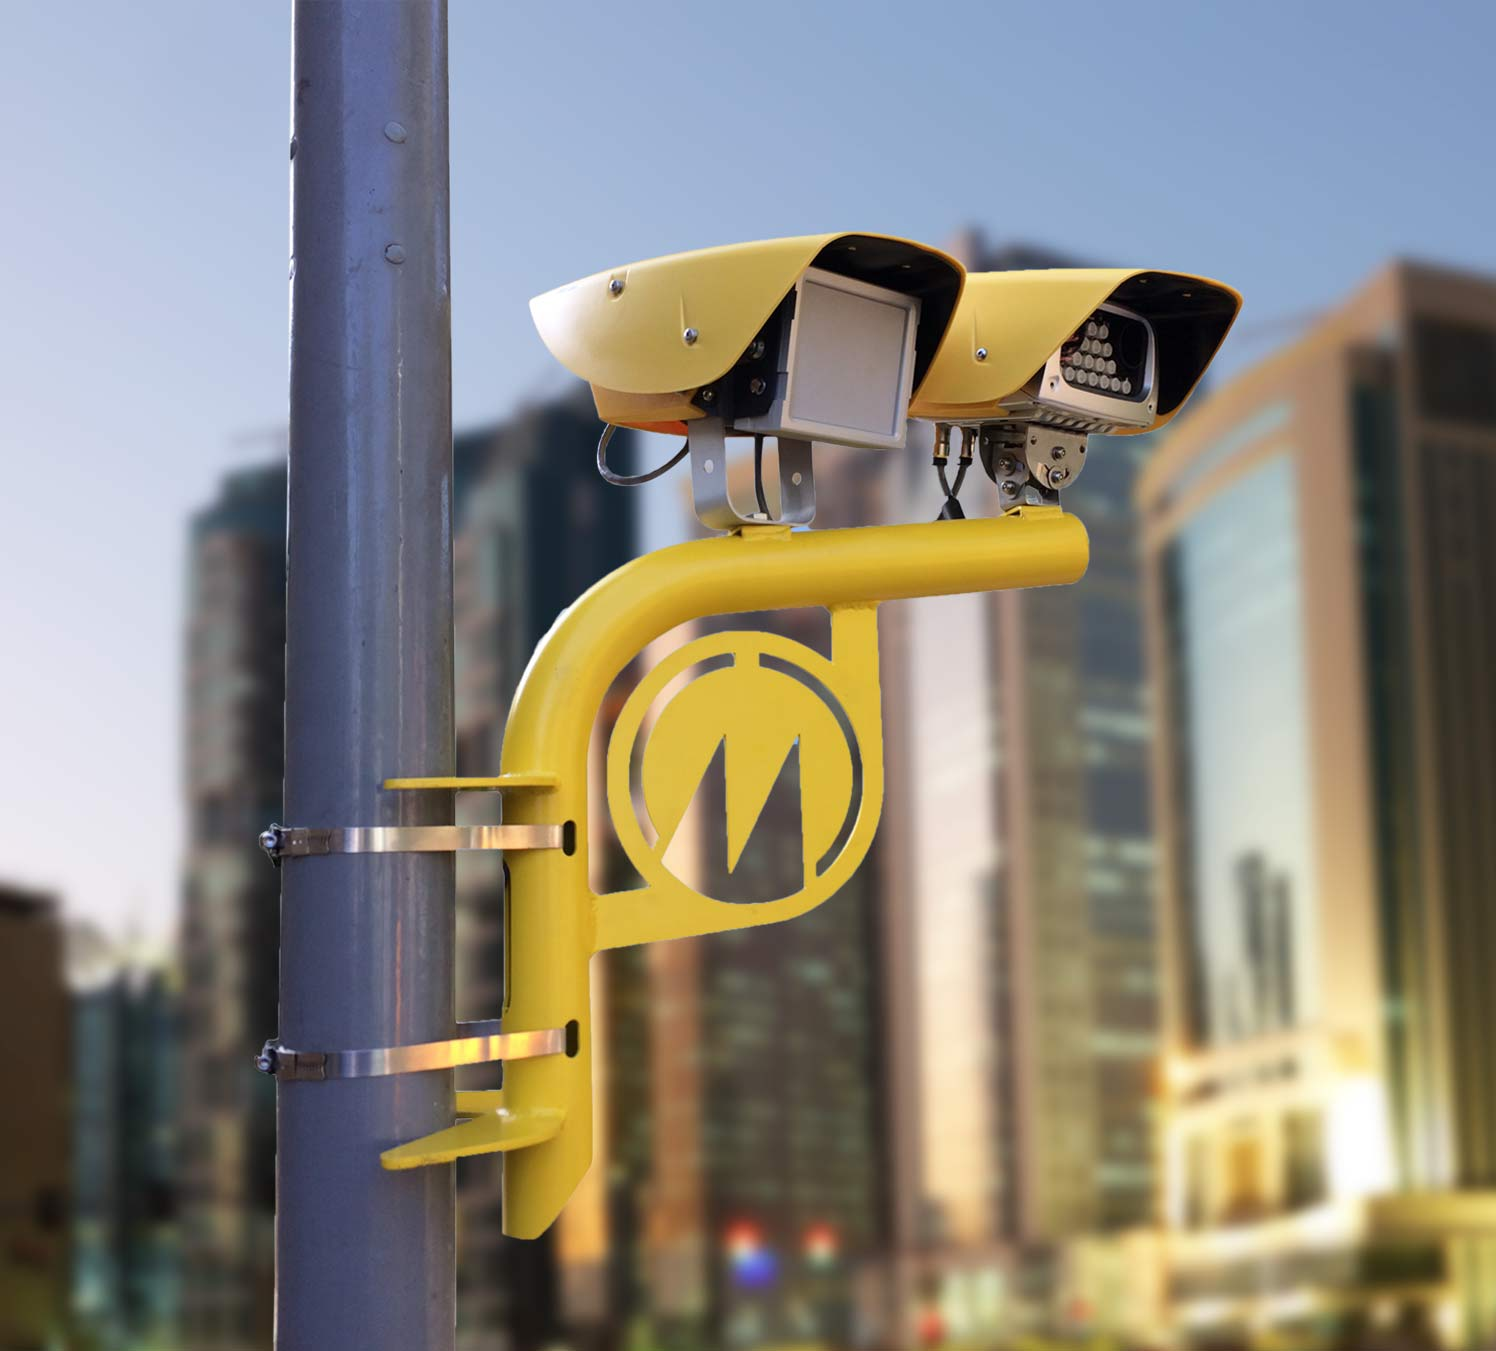 System which combines speed and red light enforcement